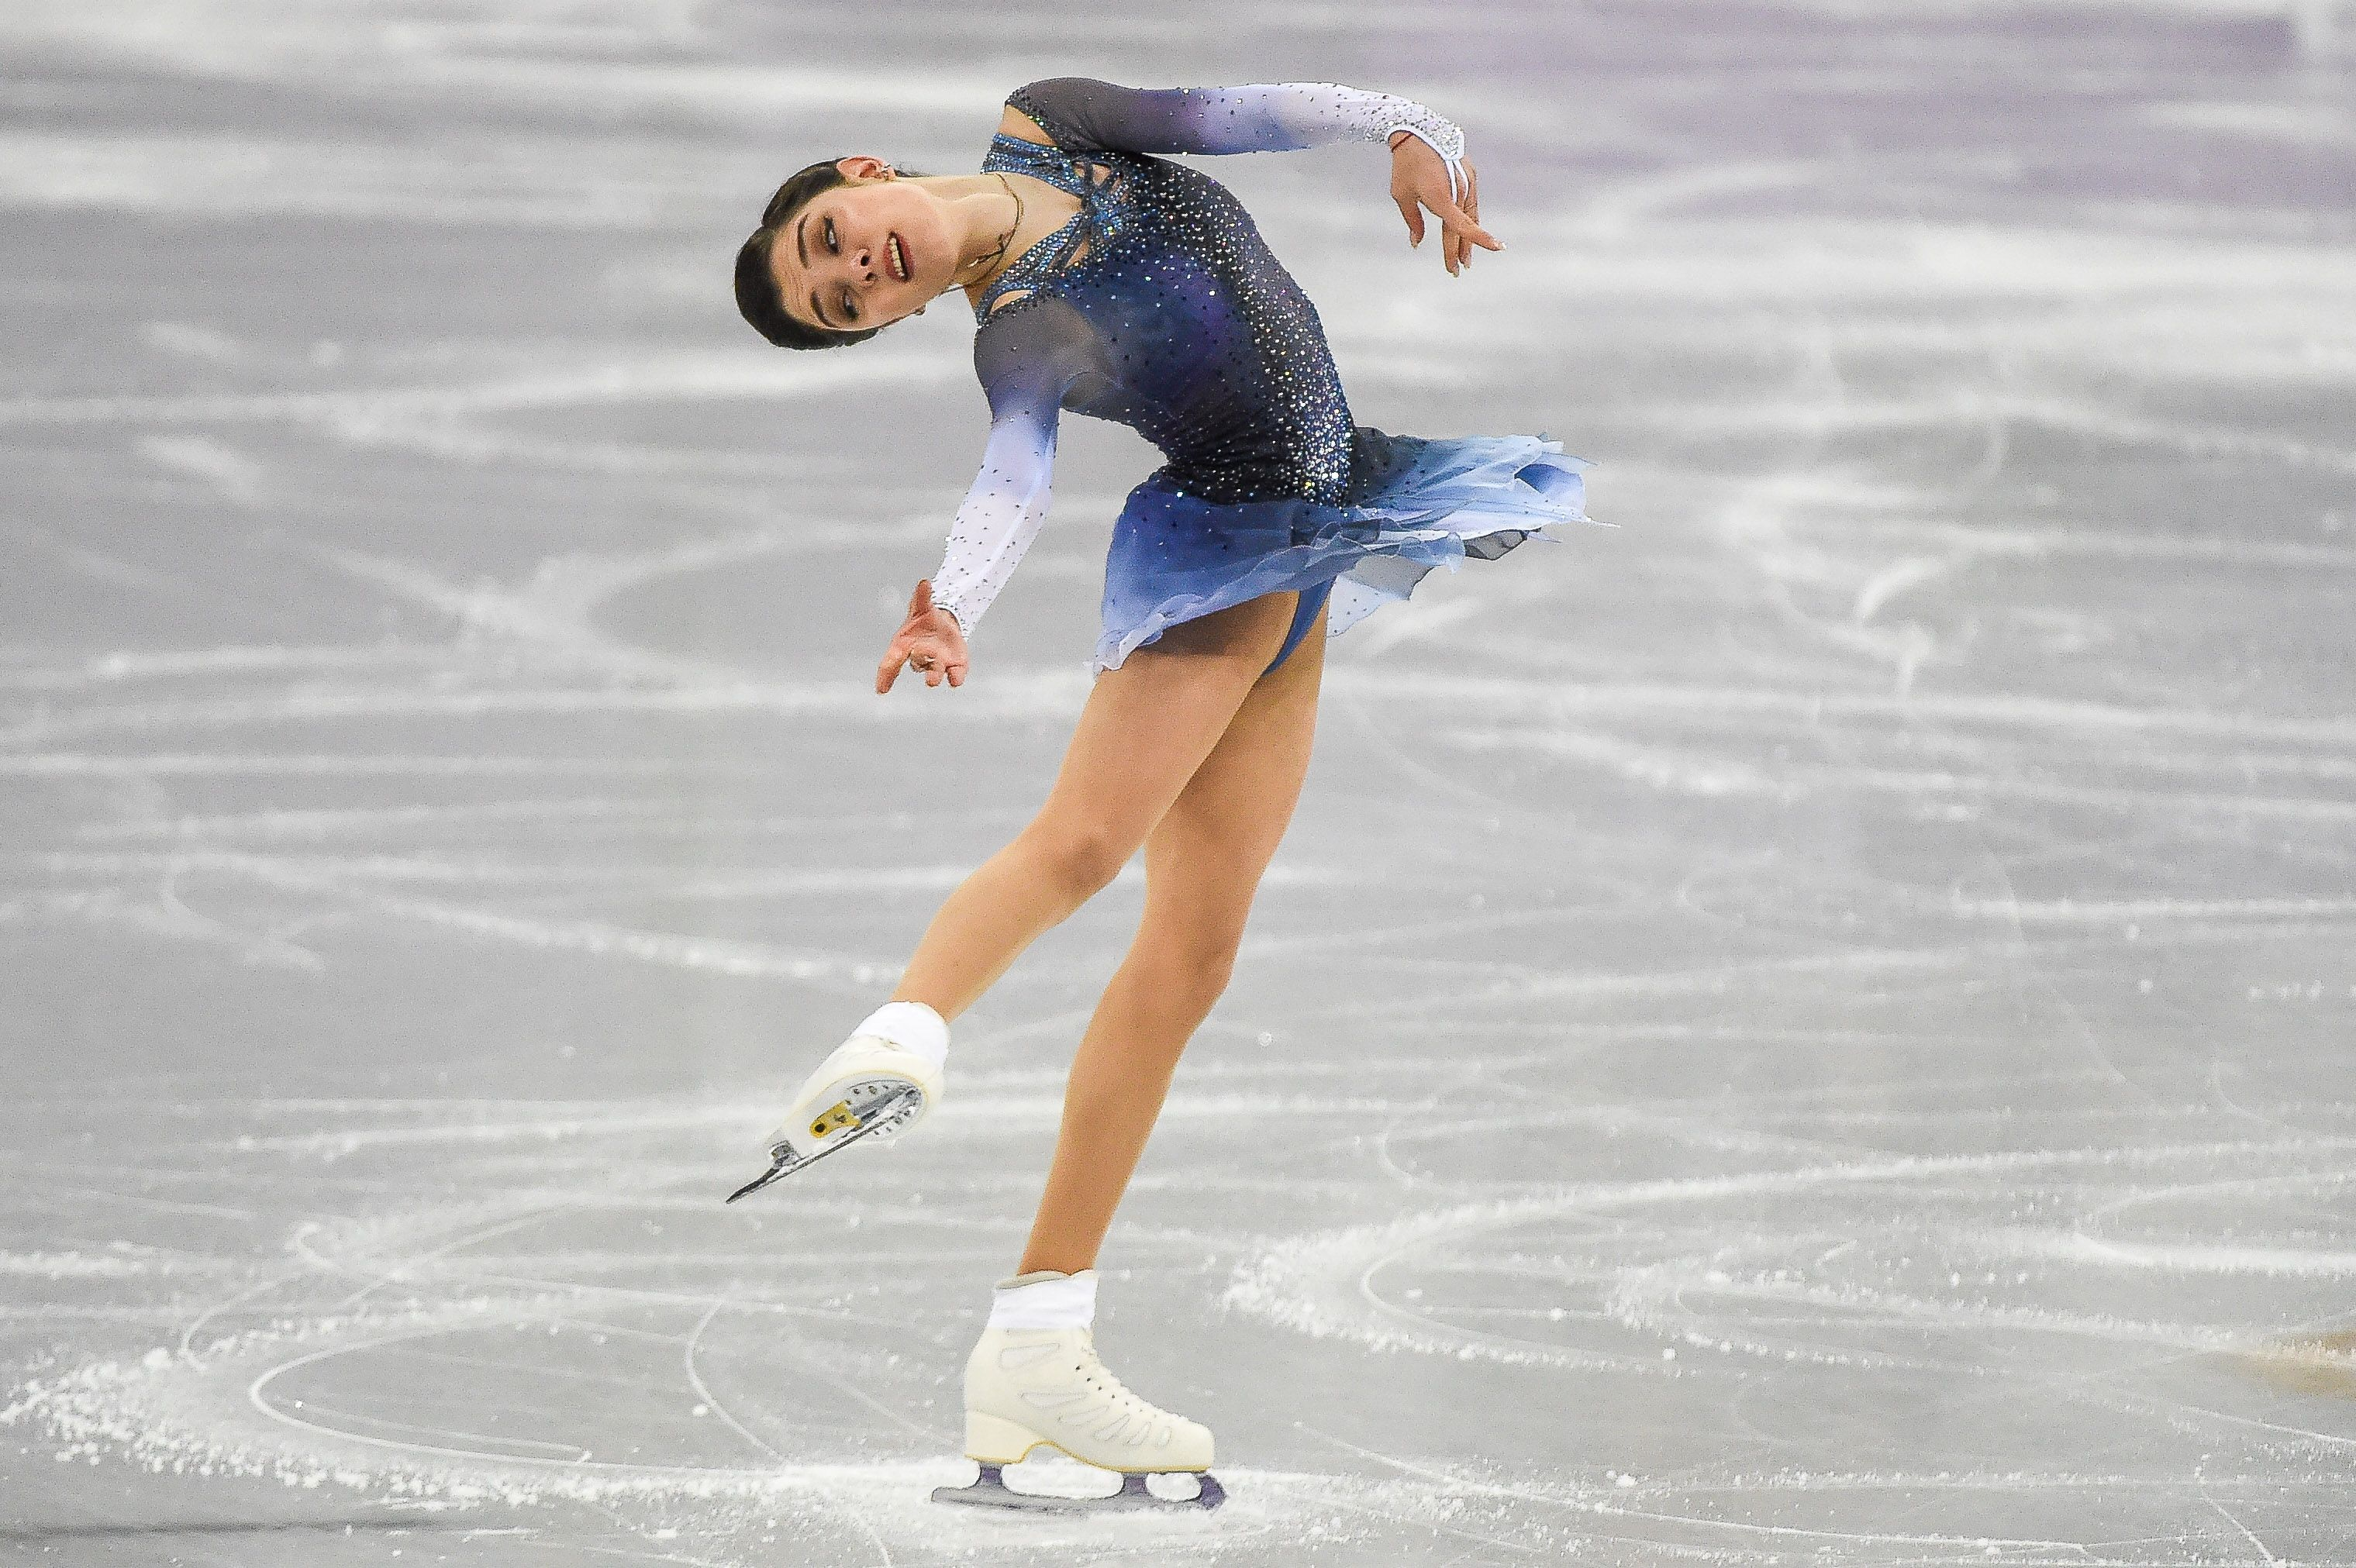 Evgenia Medvedeva of Russia competing in free dance at Gangneung Ice Arena , Gangneung, South Korea                       Pyeongchang Winter Olympics Day 13, Gangneung, USA - 21 Feb 2018